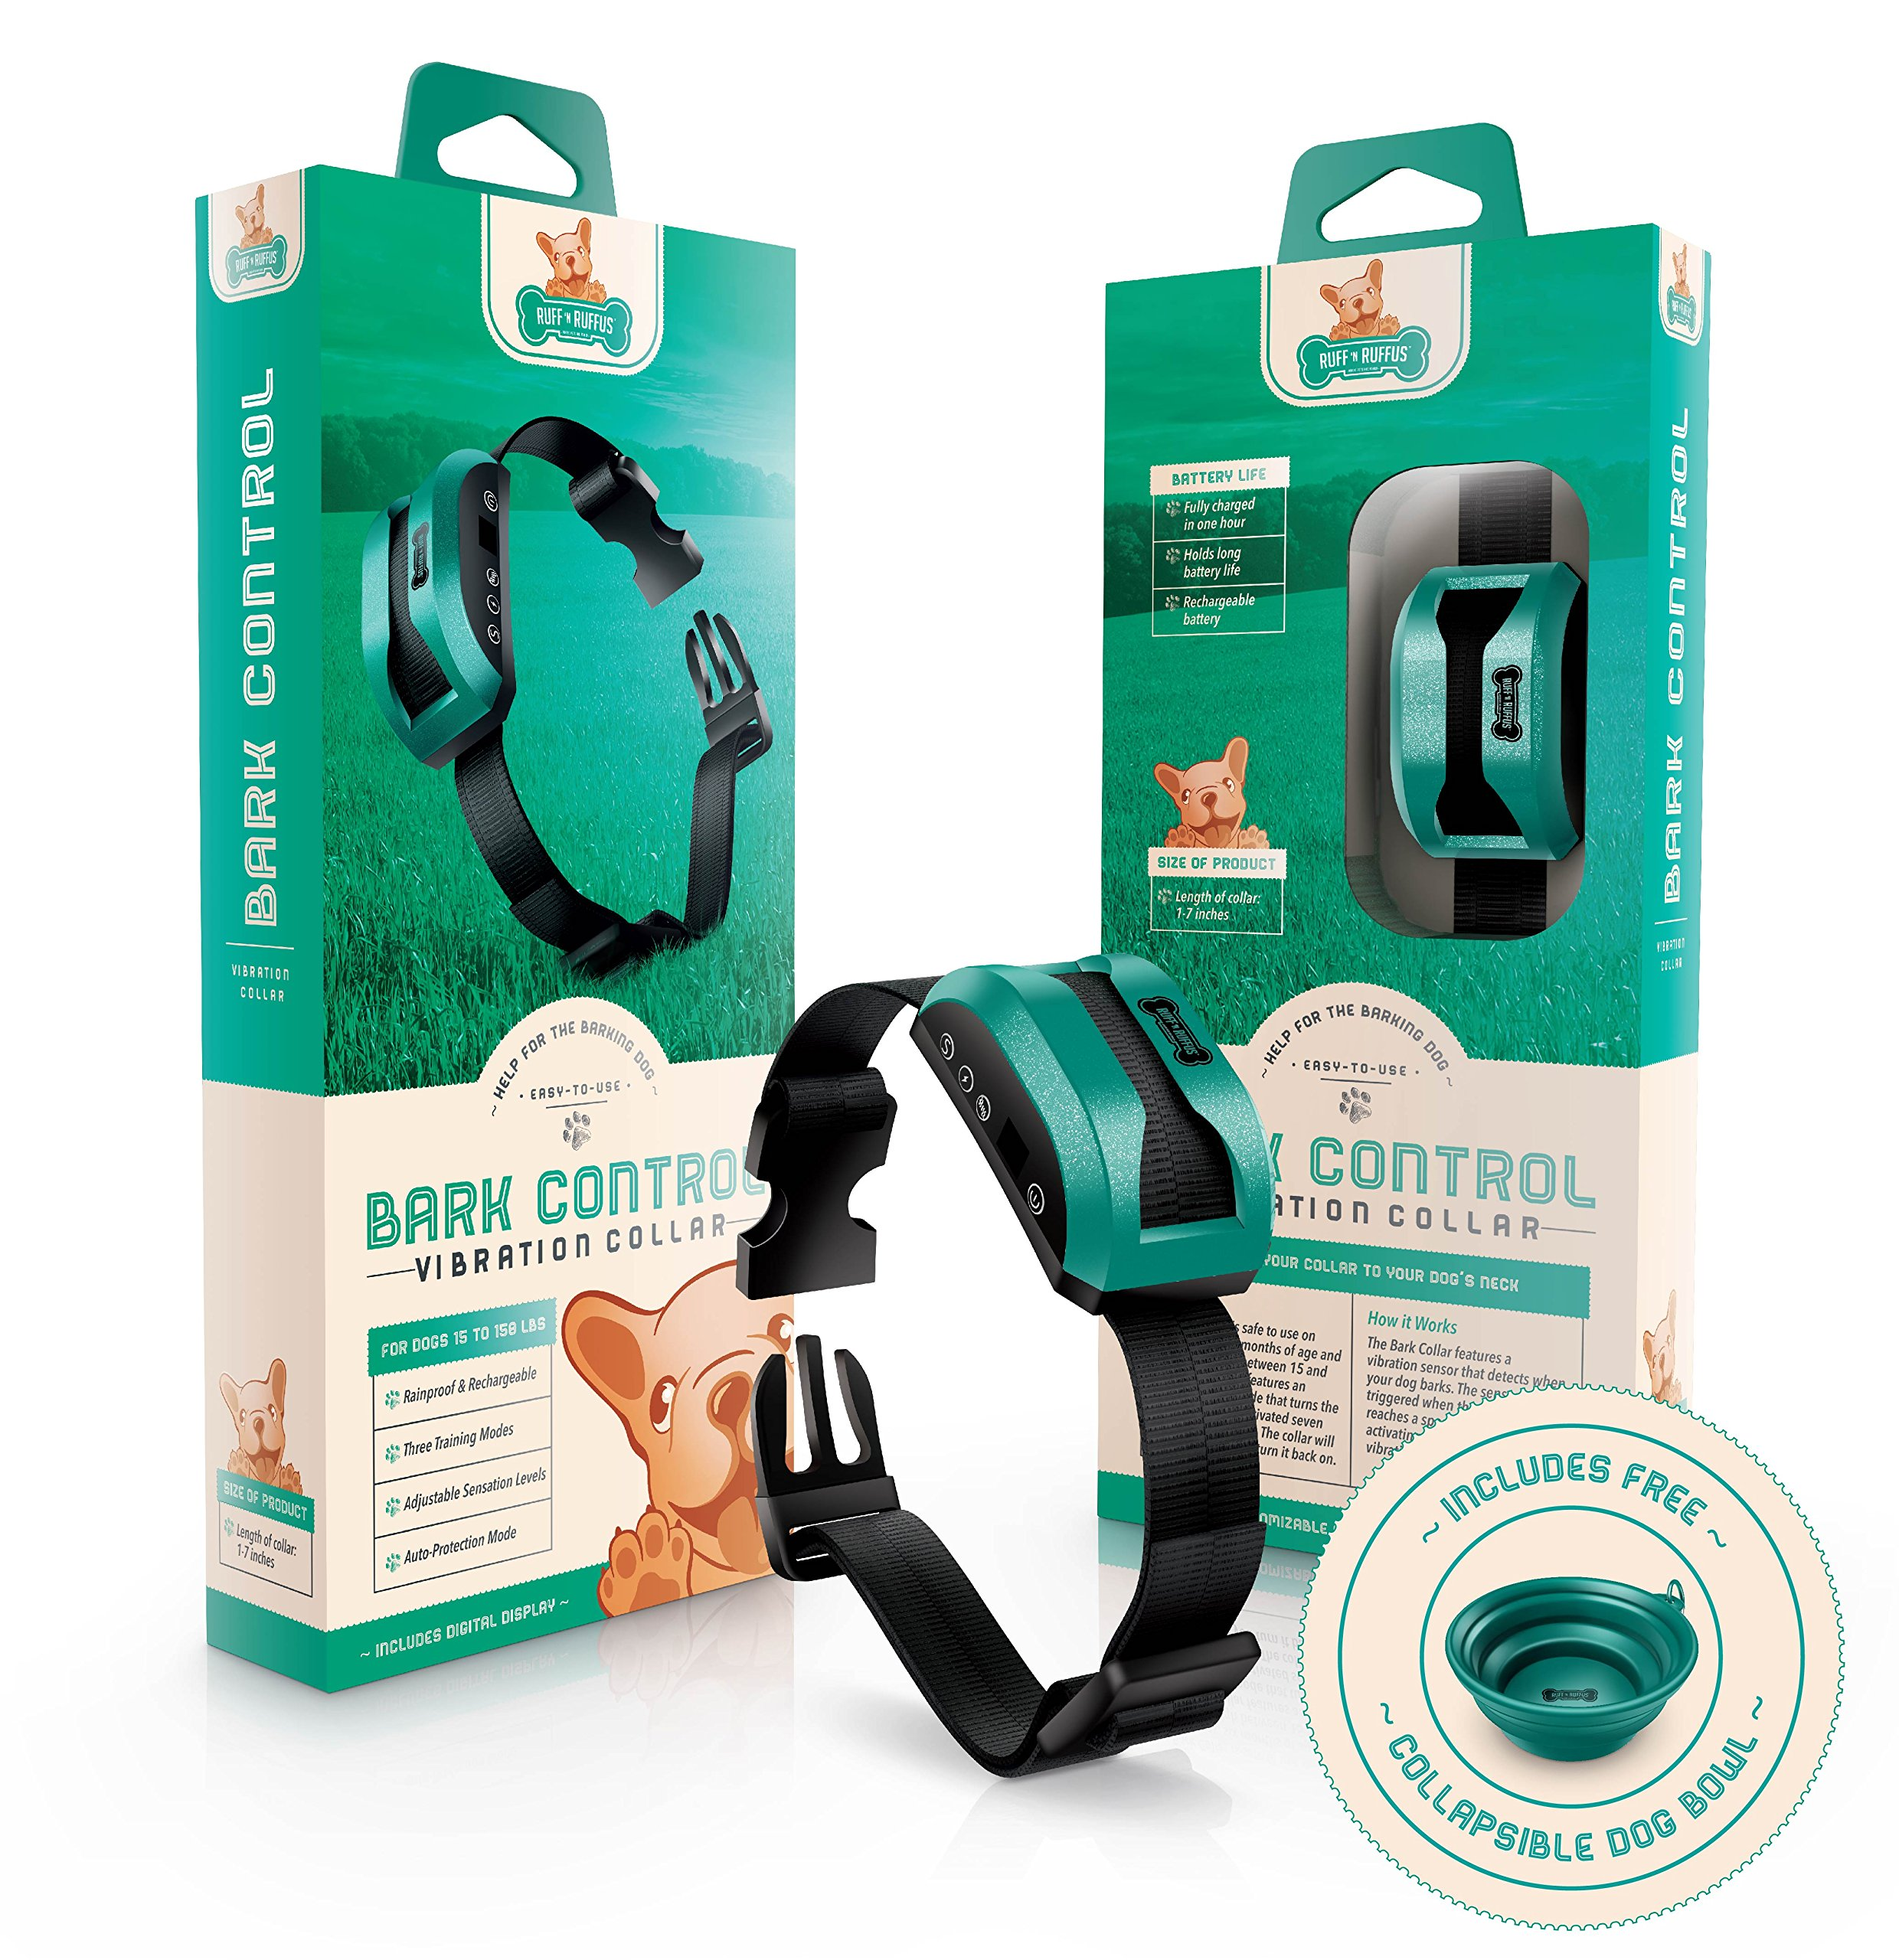 Rechargeable Dog Bark Control Collar with Smart Detection Chip + FREE BONUS Travel Bowl | Waterproof | Beep/ Vibration & Shock Dual Mode | Safe Anti-Barking Training for Small and Large Dogs